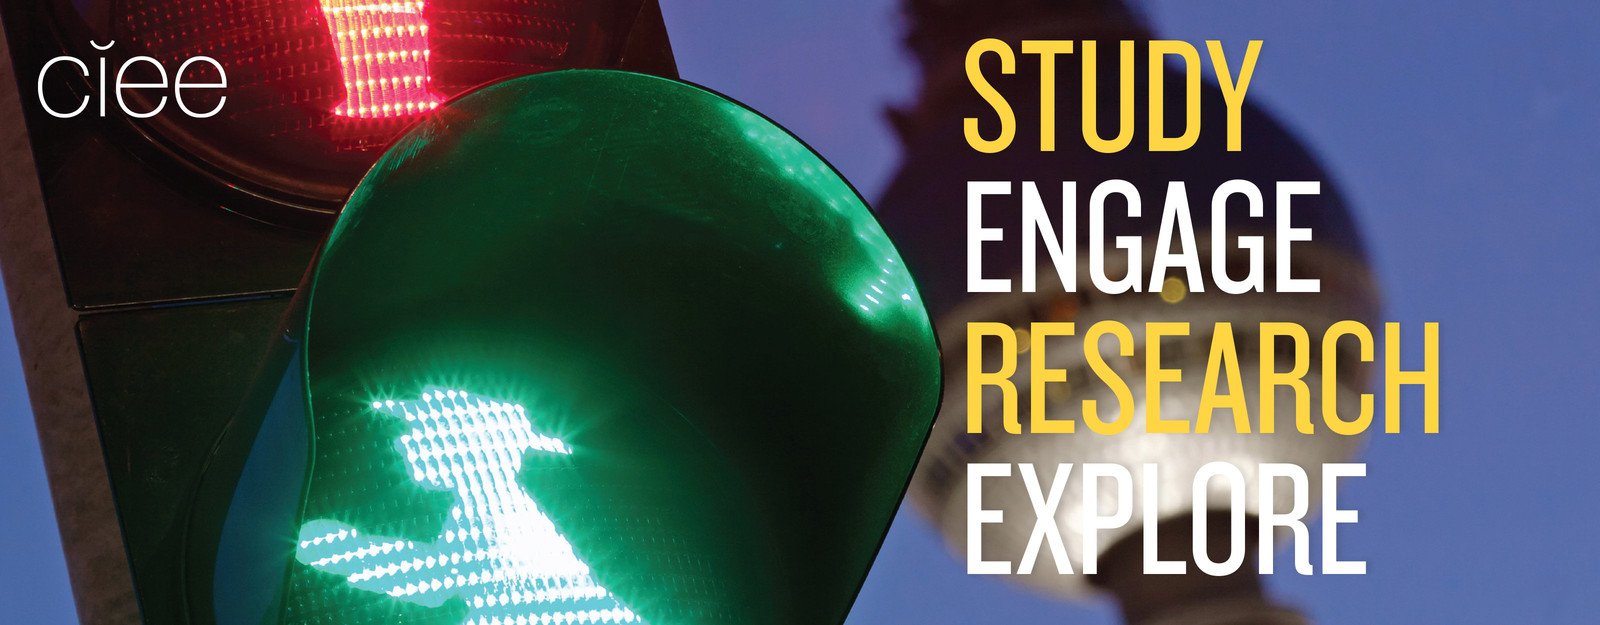 Study Engage Research Explore